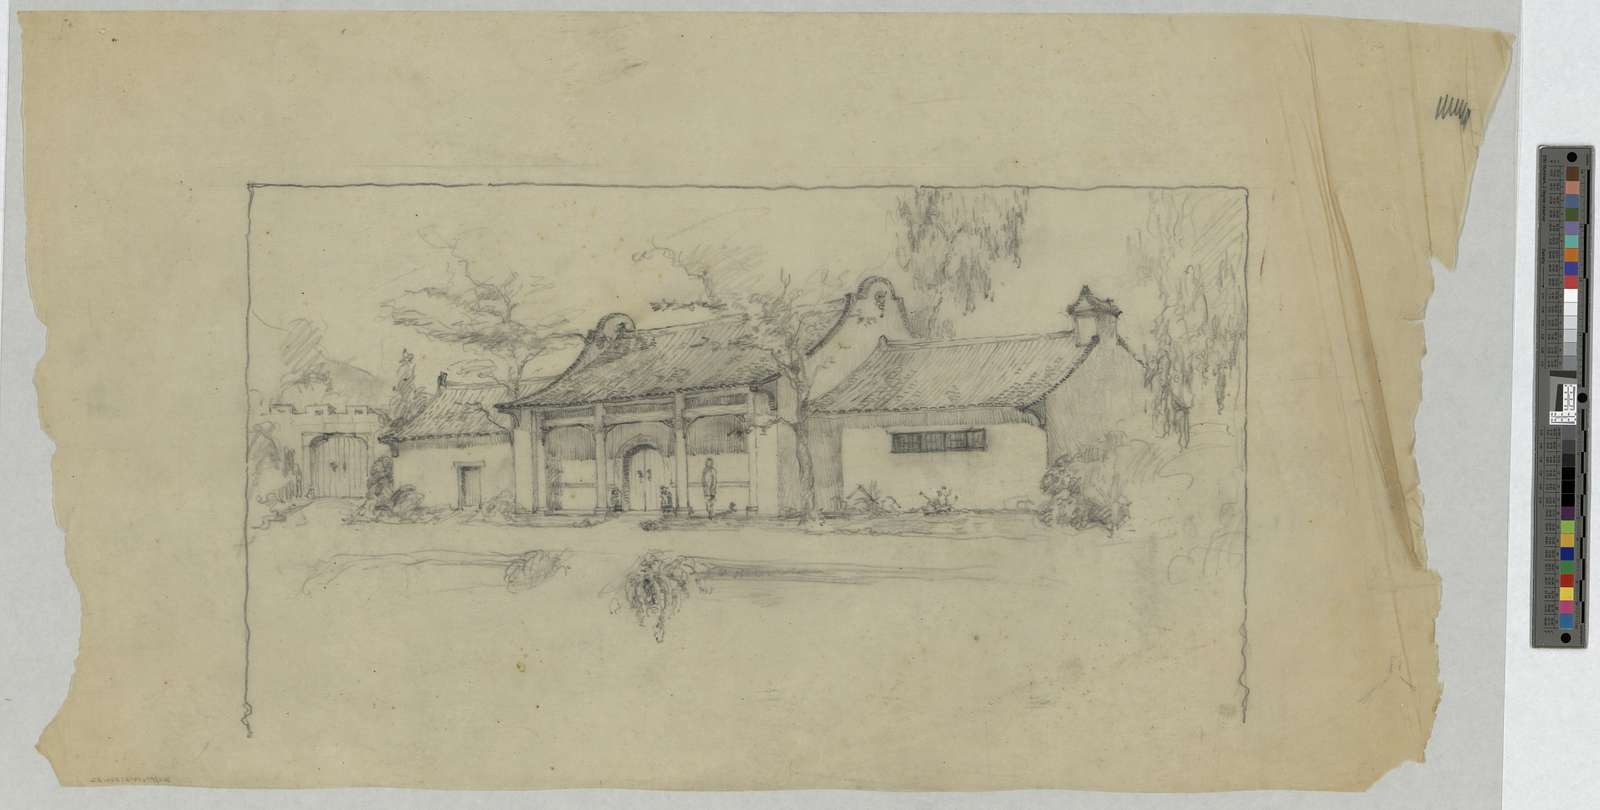 [Rendering of a house]